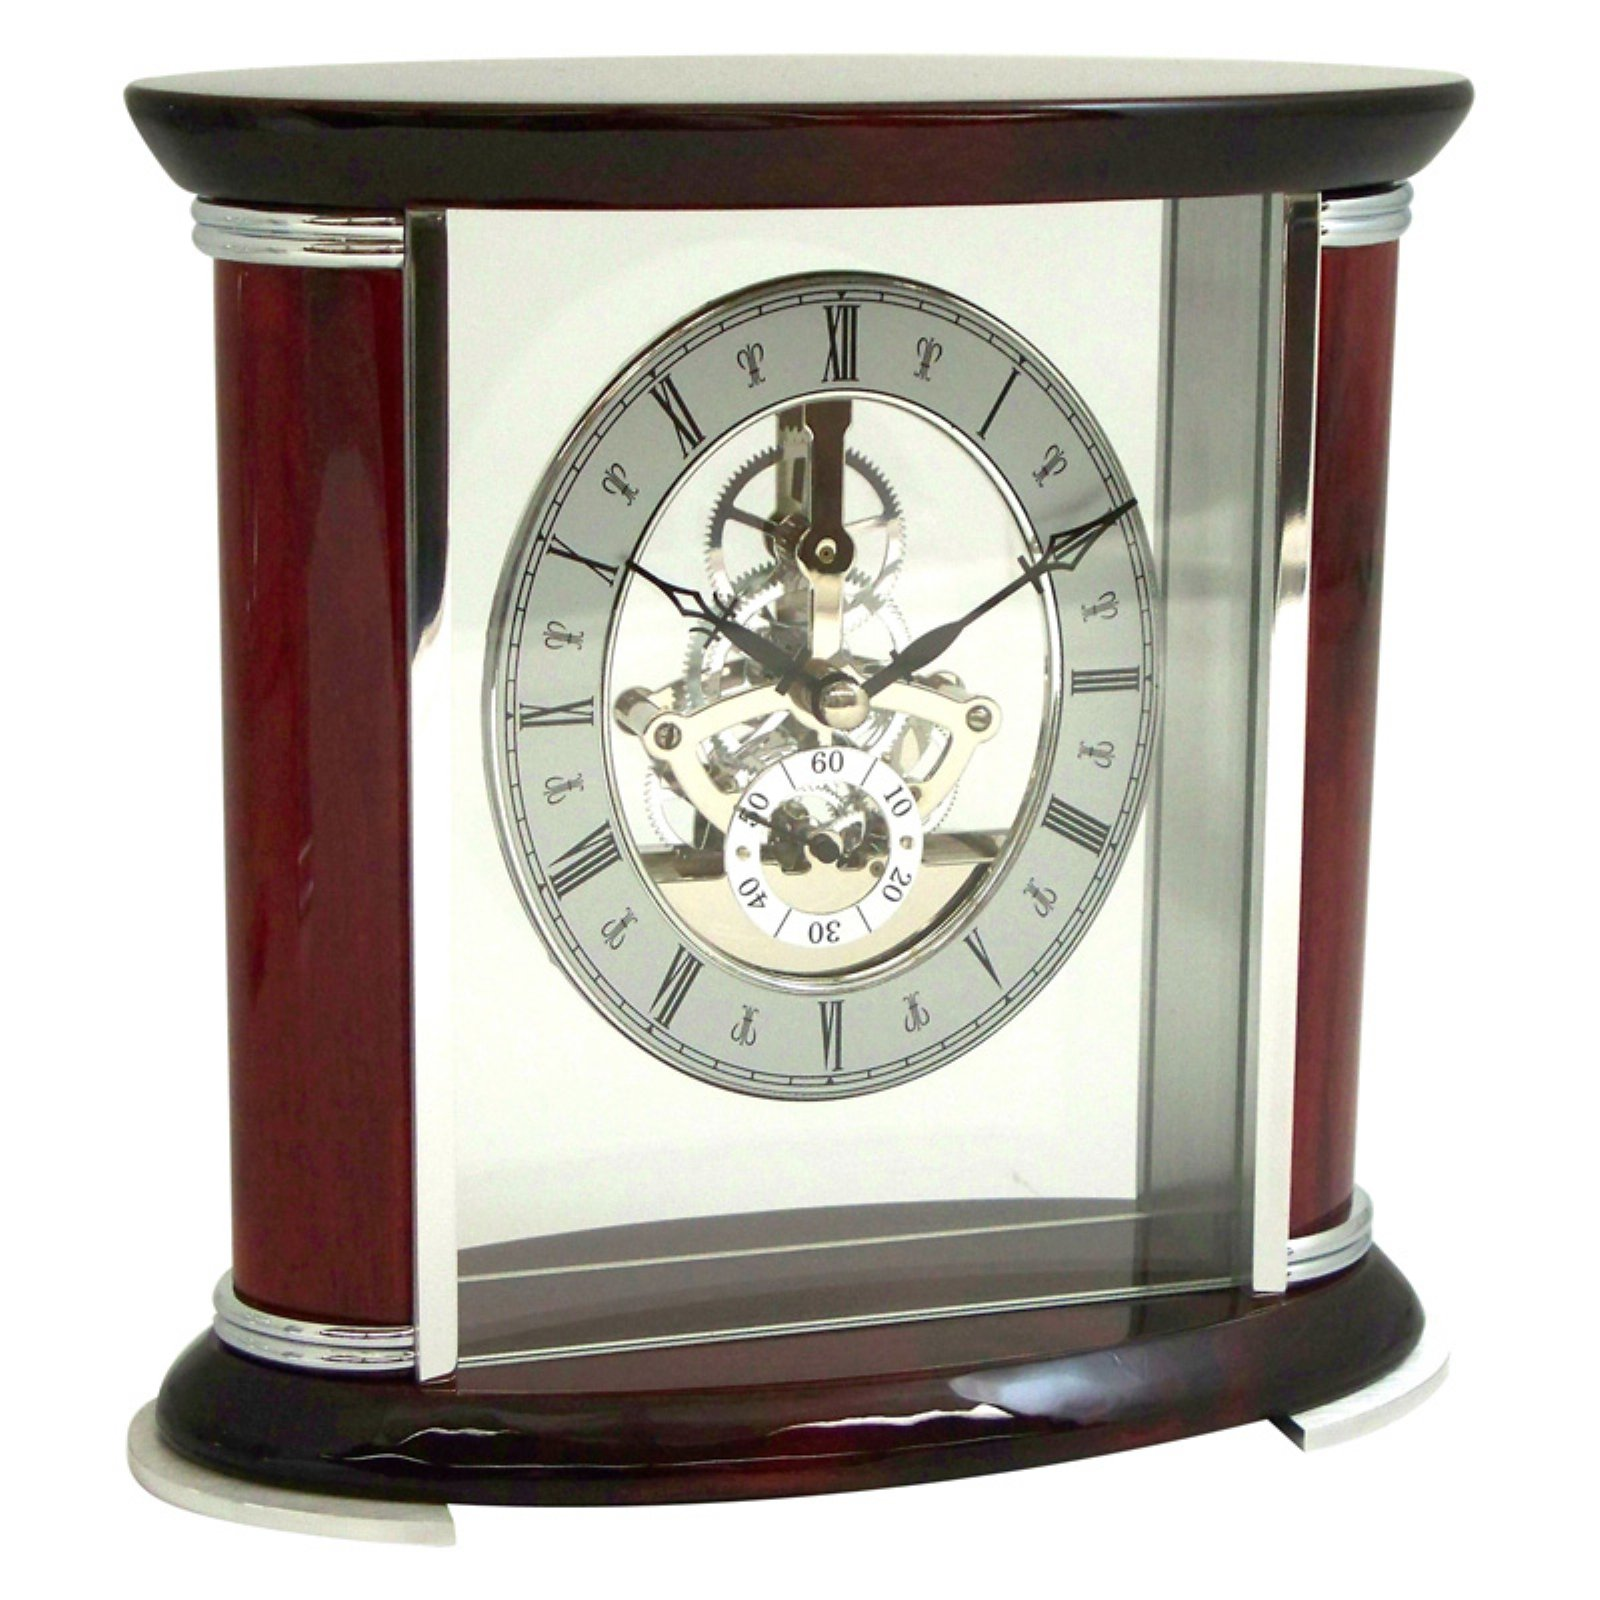 Bey-Berk International Rosewood with Chrome Mantel Clock